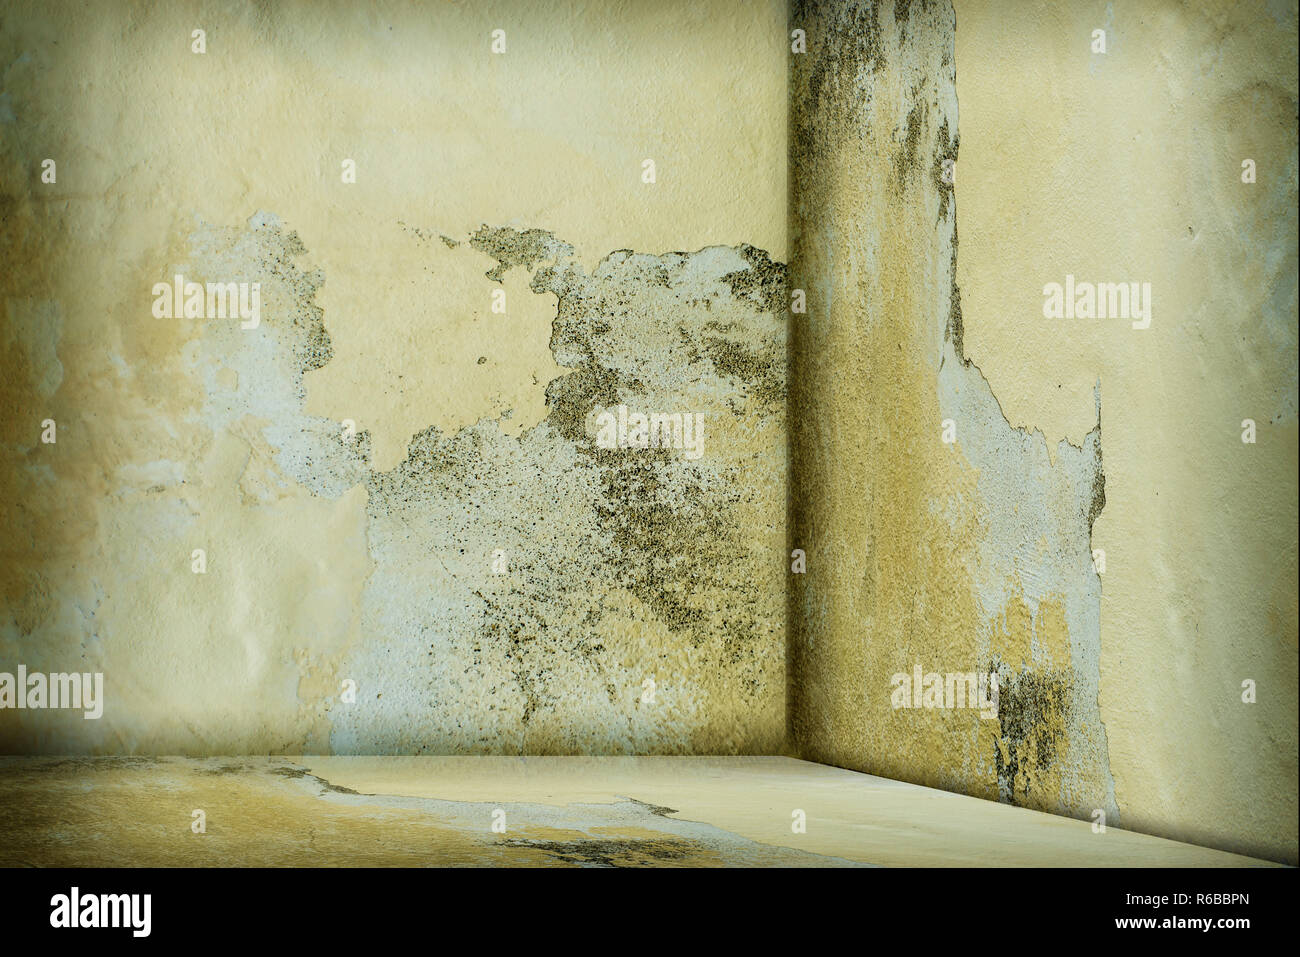 Empty Room With Dirty Wall - Stock Image